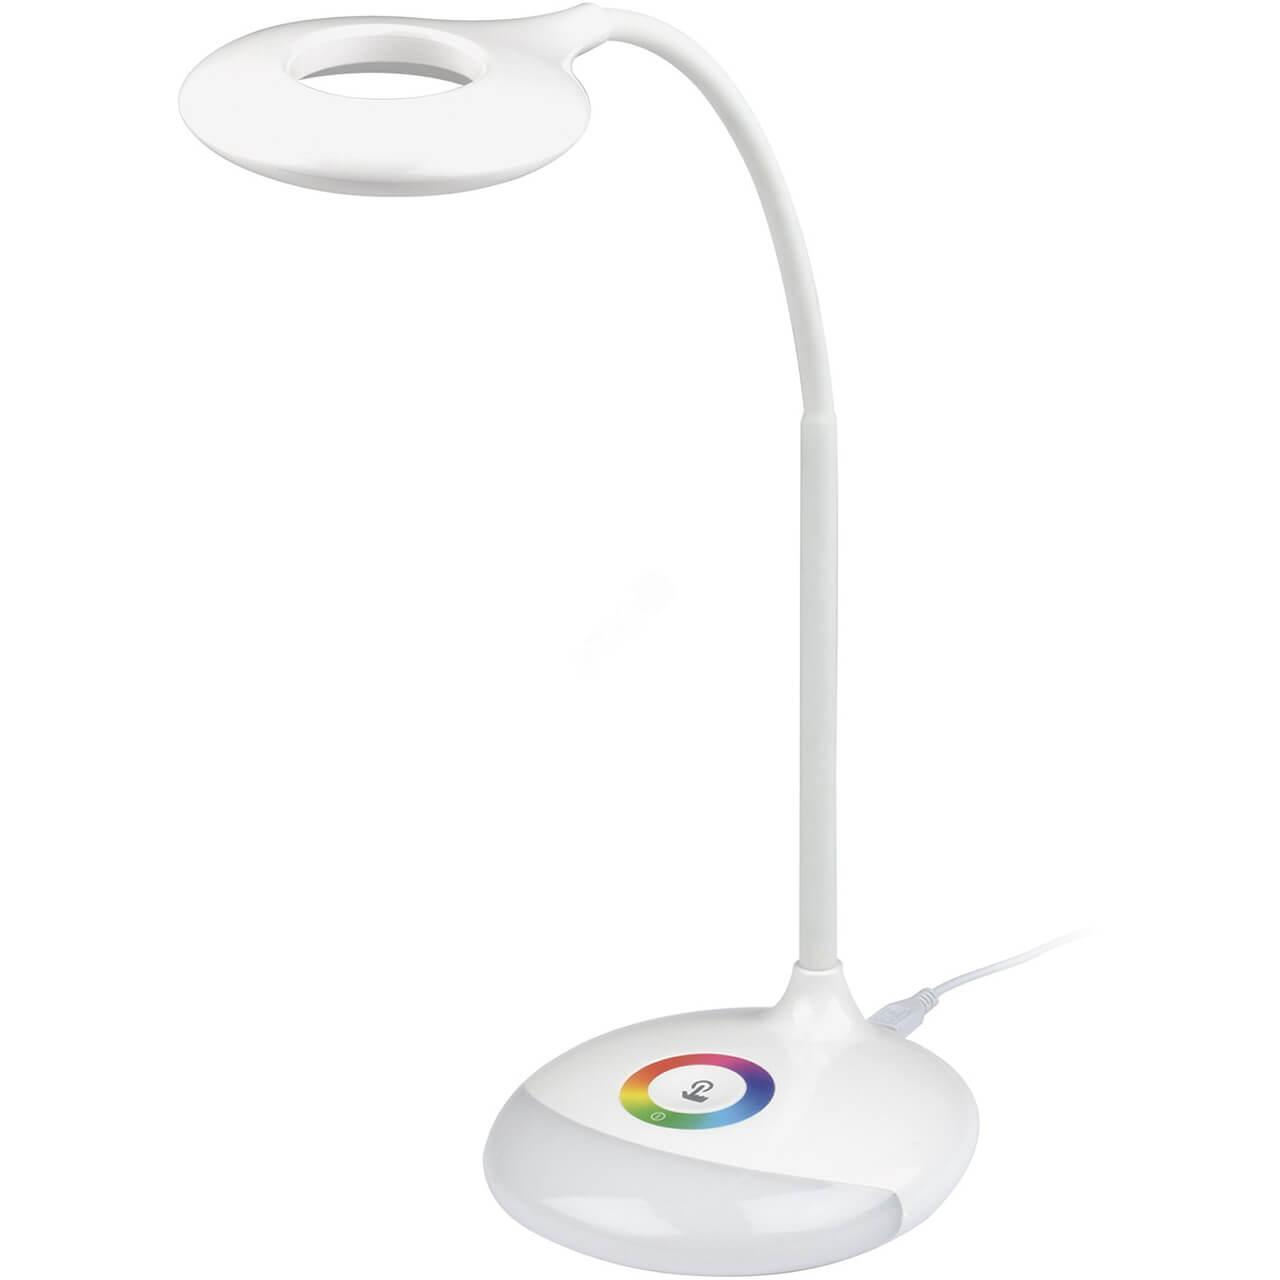 Настольная лампа (UL-00001496) Uniel TLD-535 White/LED/250Lm/5500K/Dimmer